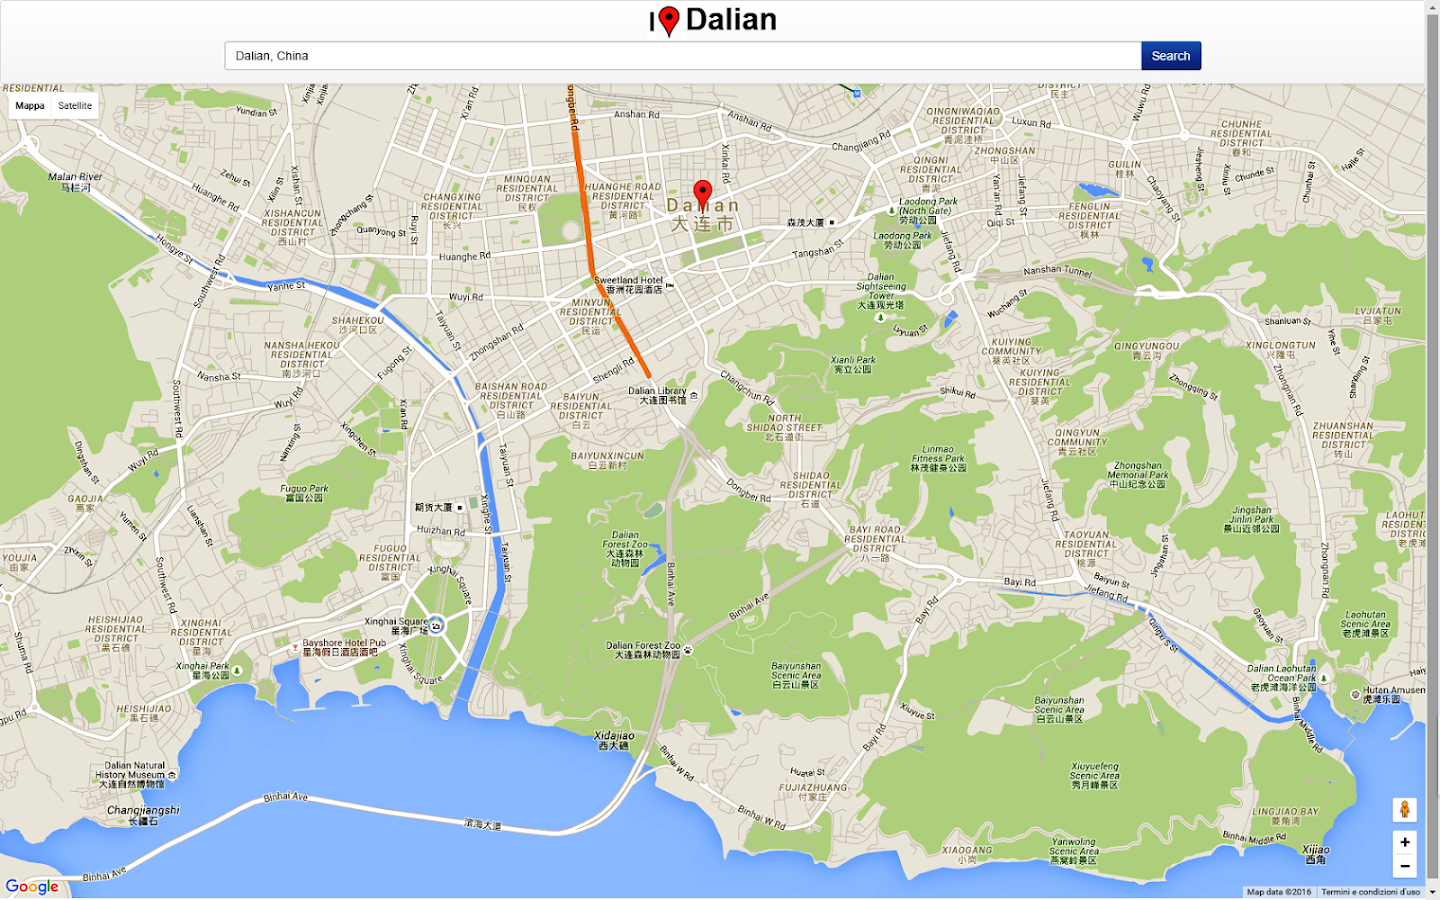 Dalian Map Android Apps on Google Play